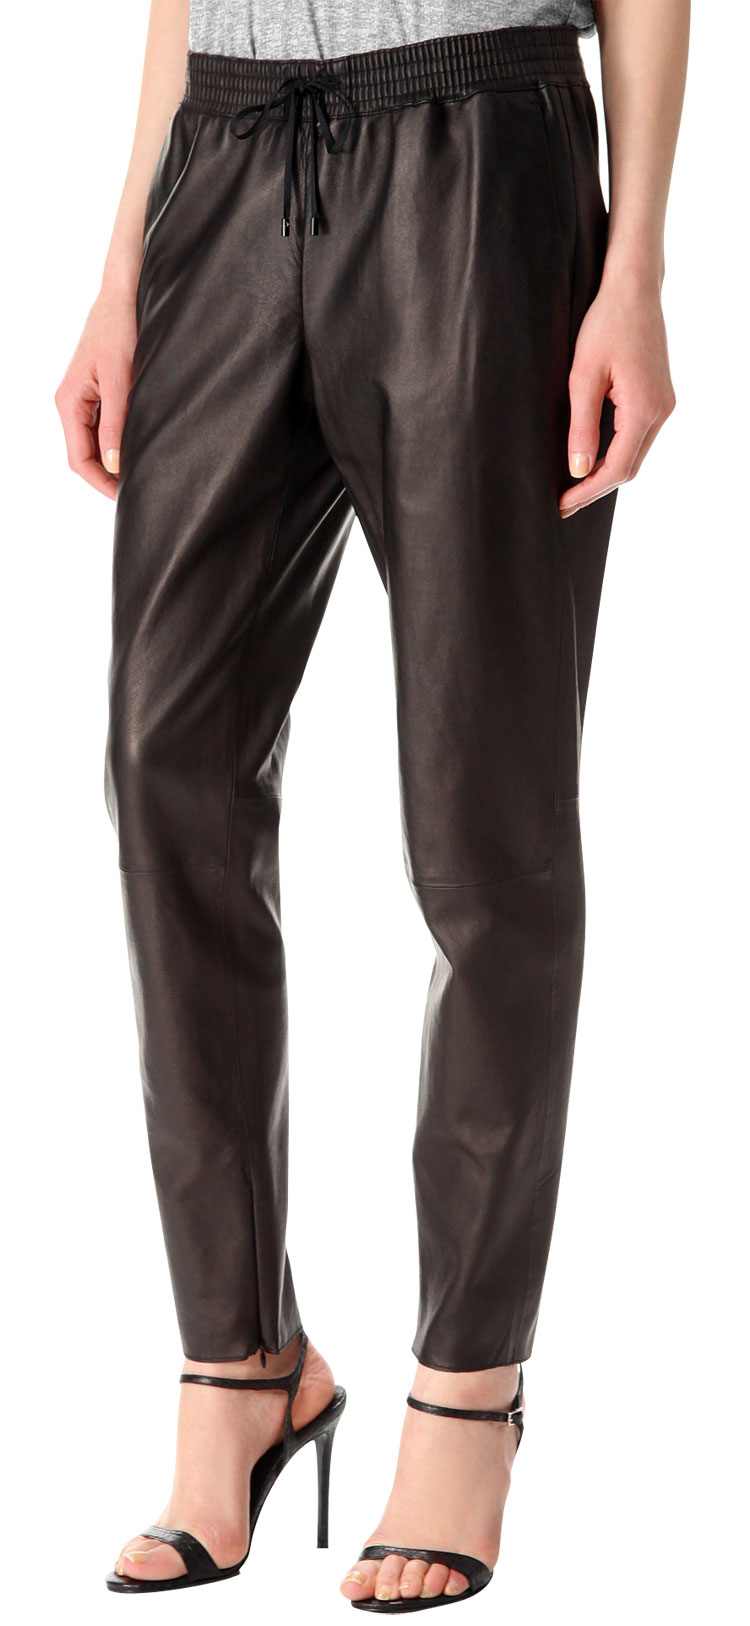 Creative Leather Jogger Pants On Pinterest  Leather Joggers Jogger Pants